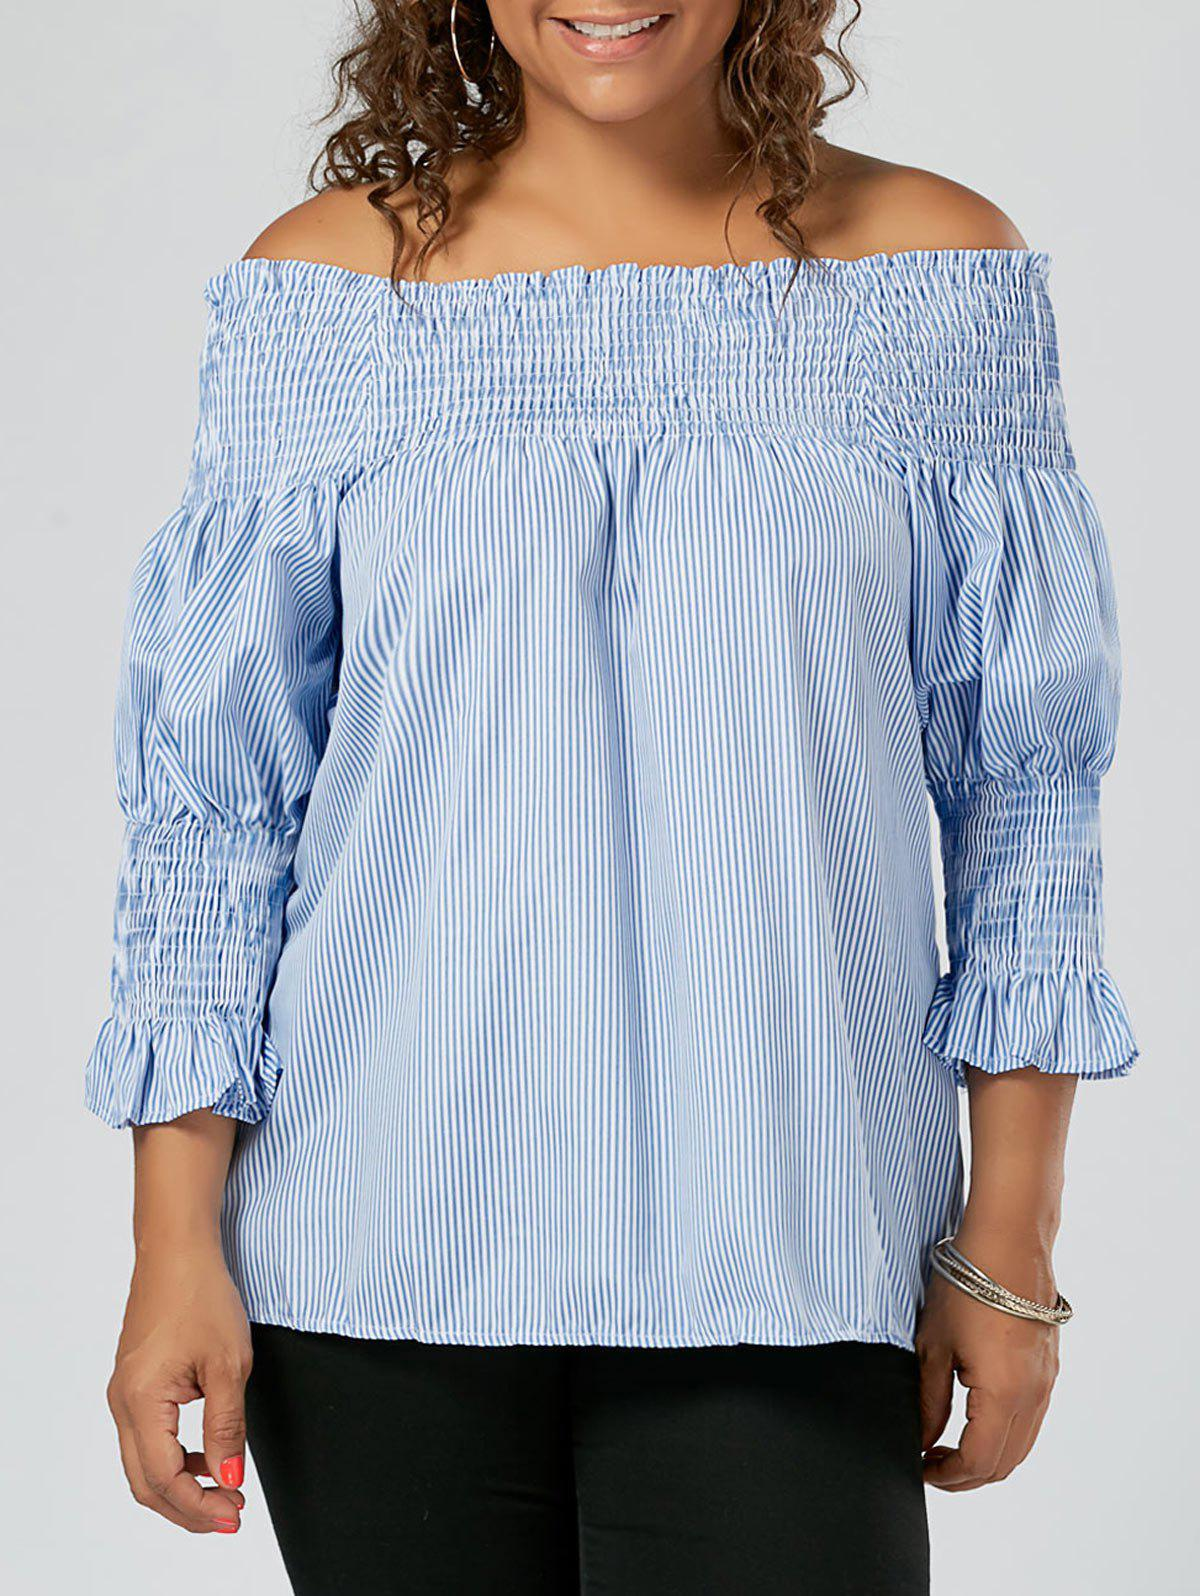 Stripe Ruffled Off The Shoulder Plus Size TopWOMEN<br><br>Size: 5XL; Color: BLUE; Material: Cotton Blends,Polyester; Shirt Length: Regular; Sleeve Length: Three Quarter; Collar: Off The Shoulder; Style: Fashion; Season: Spring,Summer; Embellishment: Ruffles; Pattern Type: Striped; Weight: 0.2100kg; Package Contents: 1 x Top;